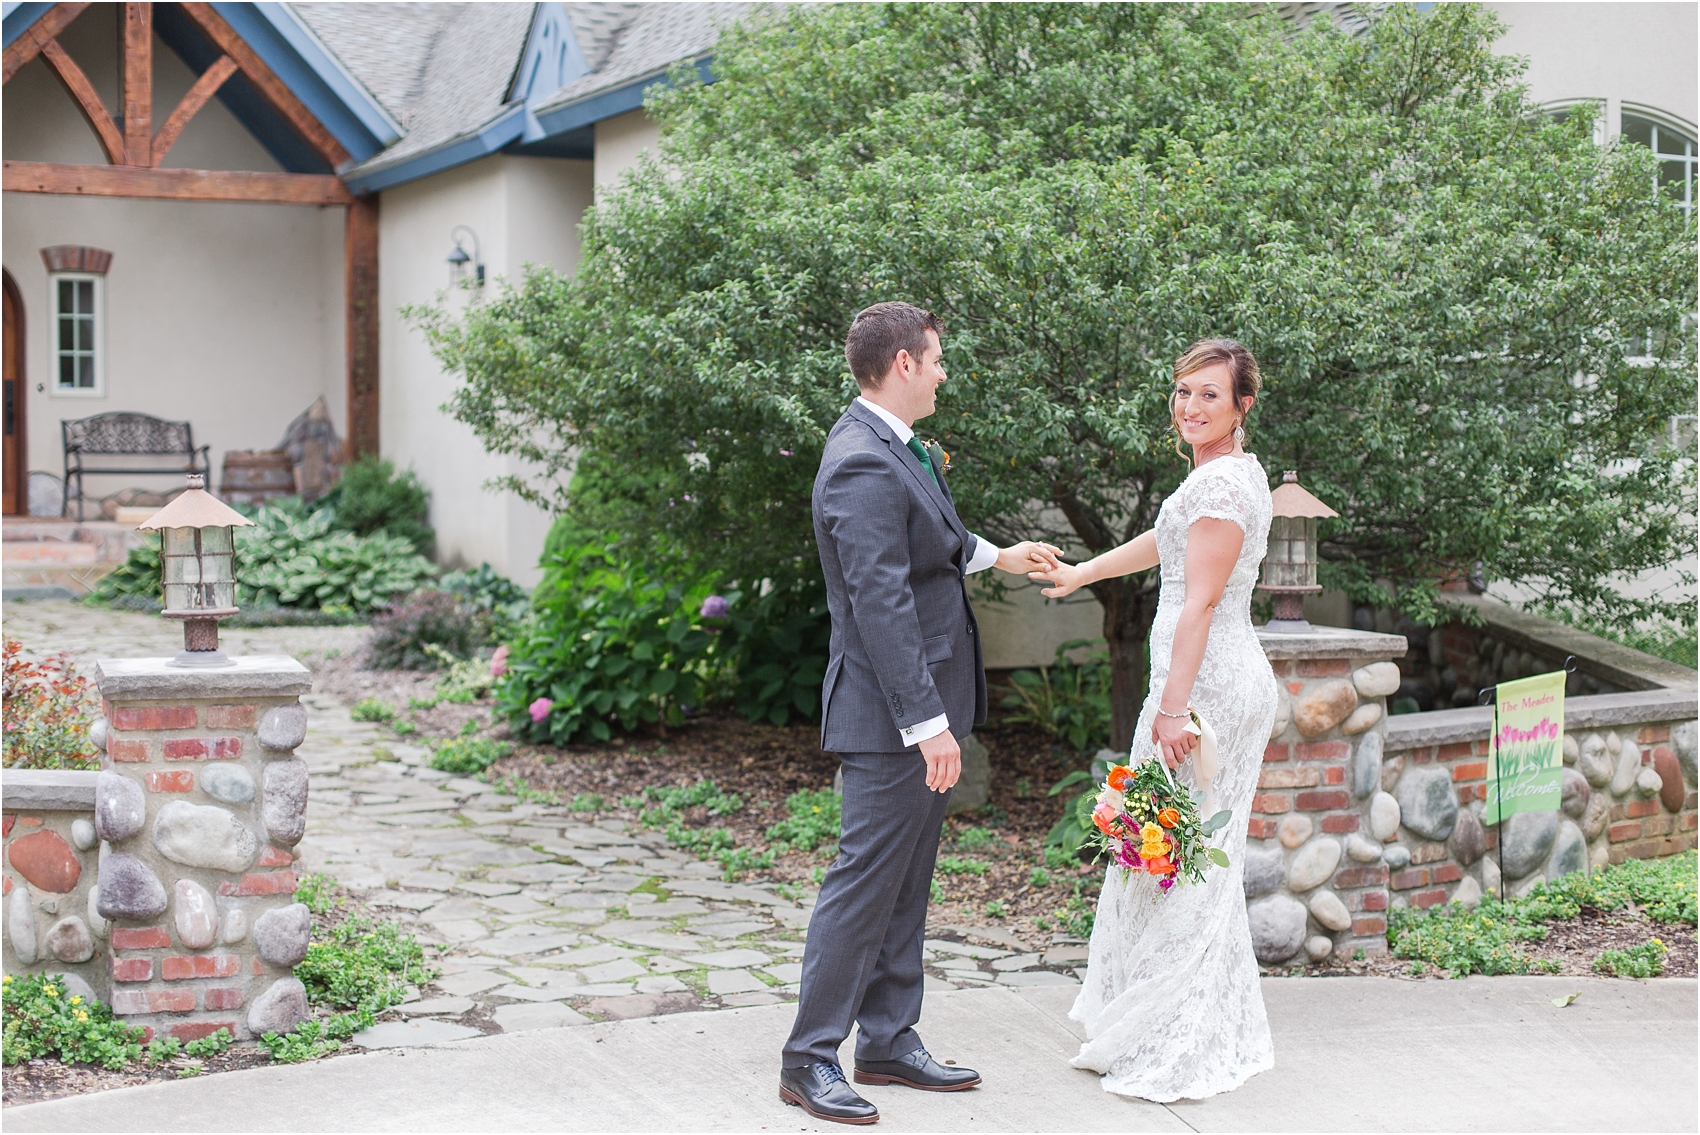 romantic-intimate-backyard-wedding-photos-at-private-estate-in-ann-arbor-mi-by-courtney-carolyn-photography_0081.jpg